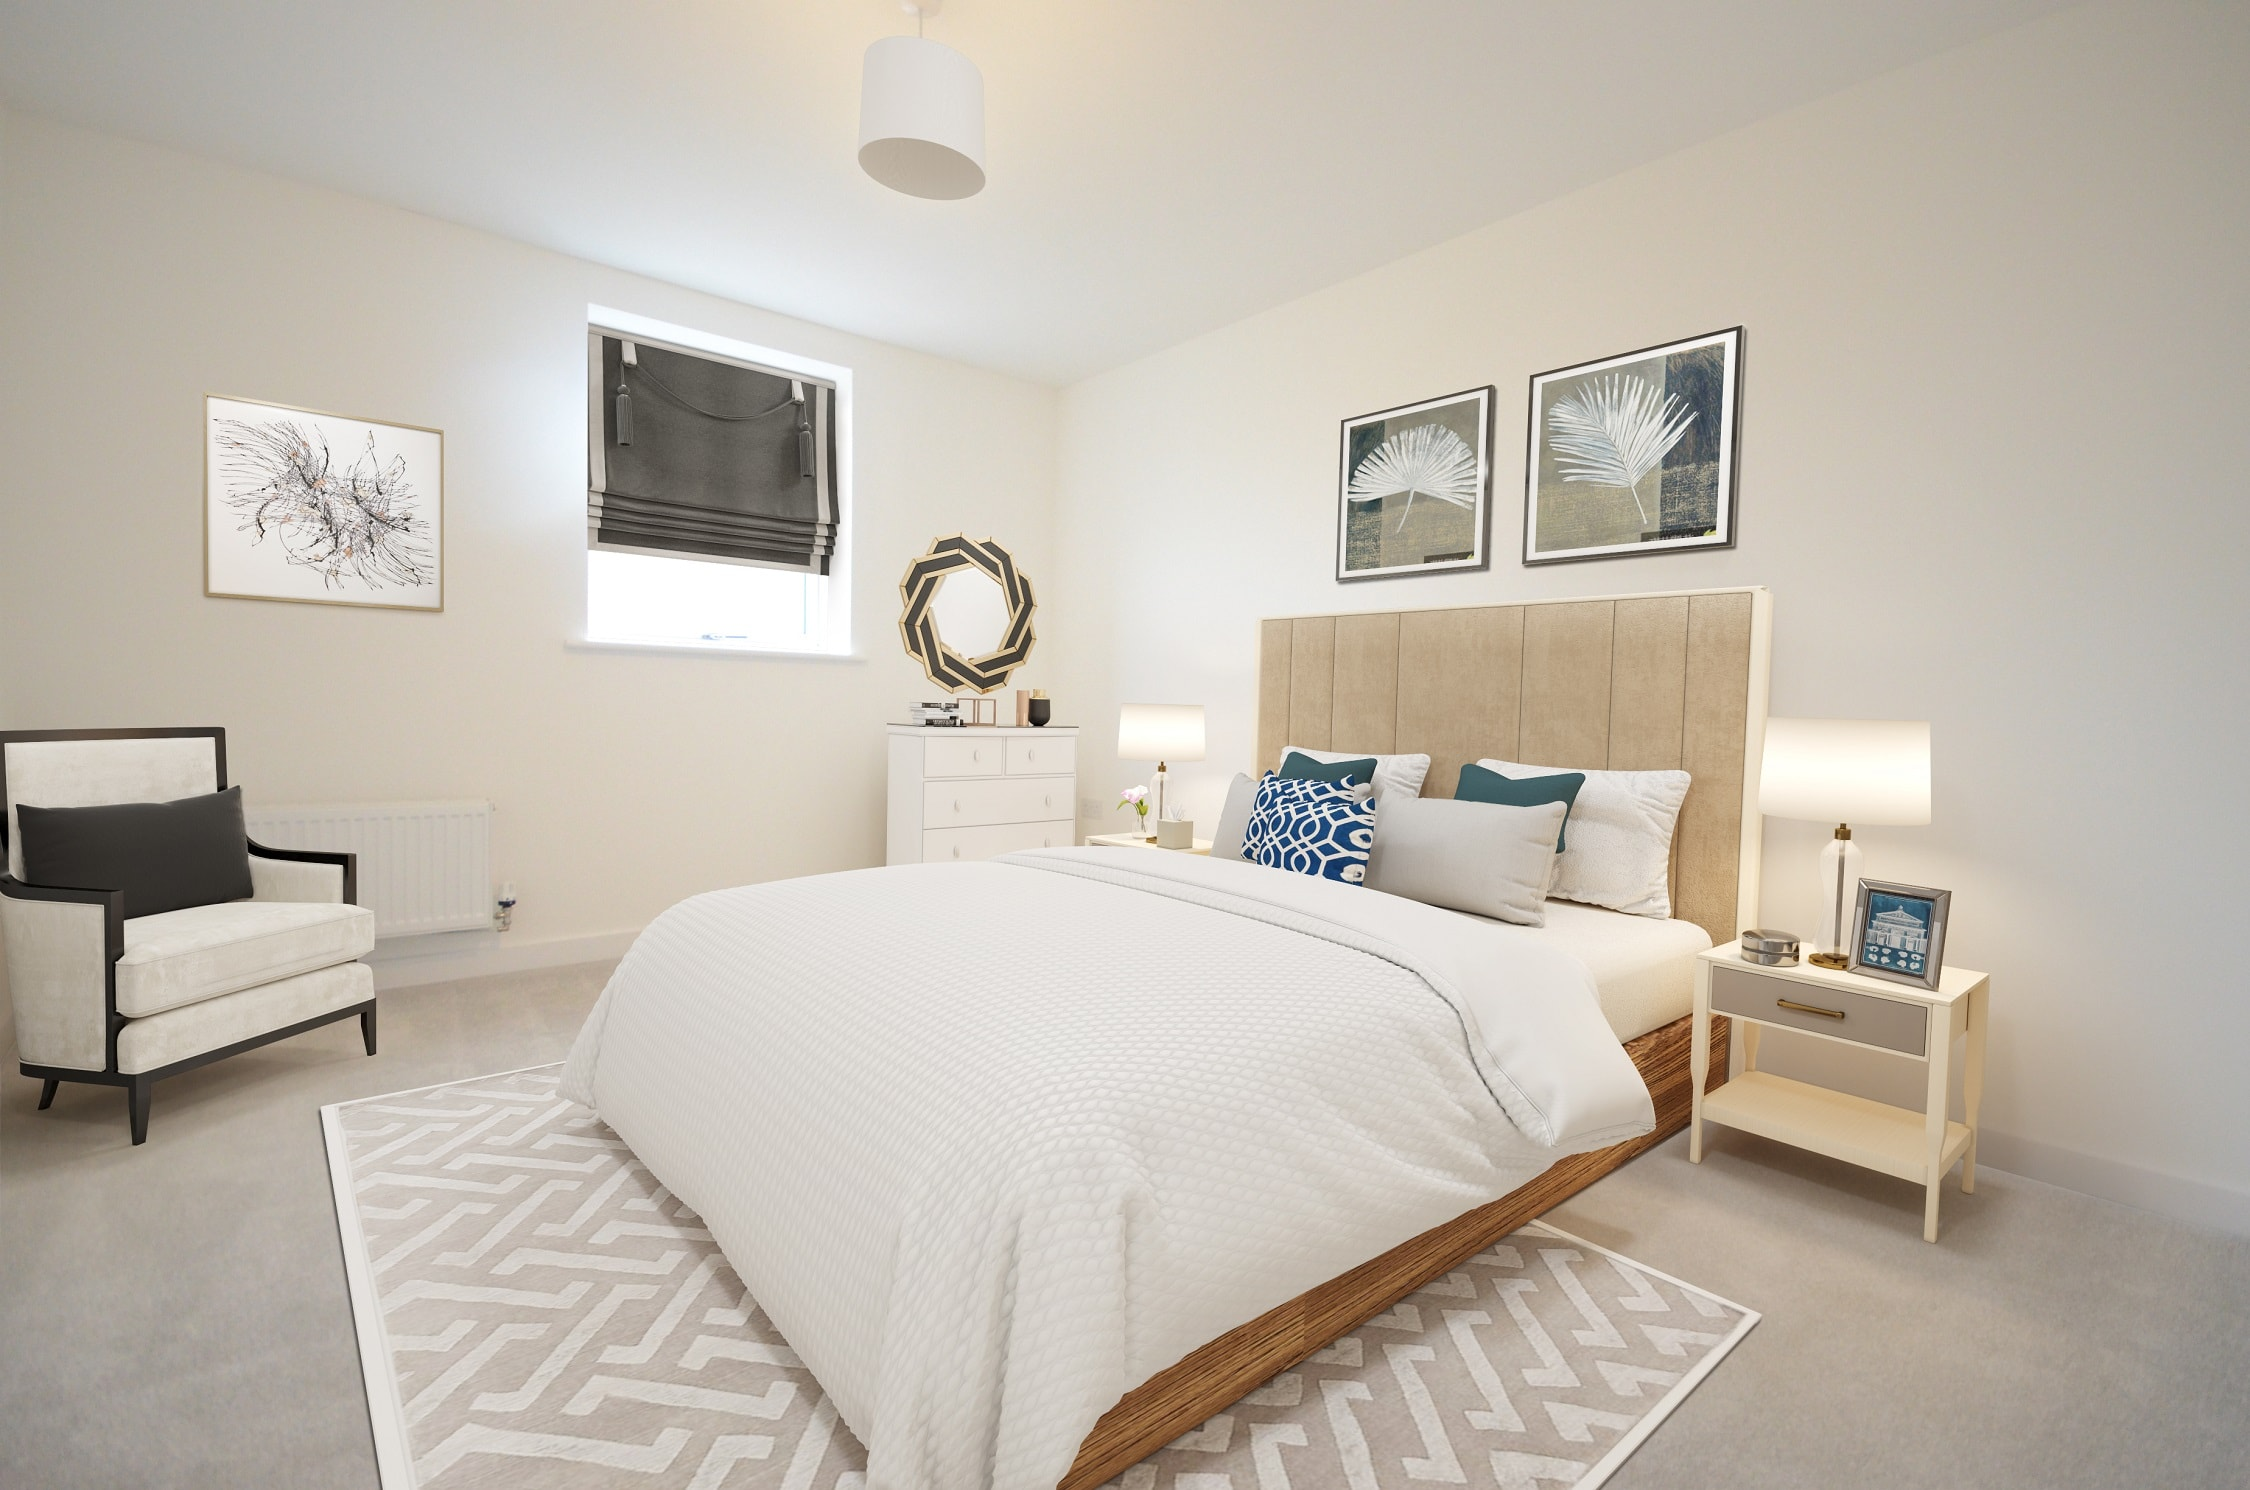 Shopwyke Lake by Hyde New Homes - available on Share to Buy